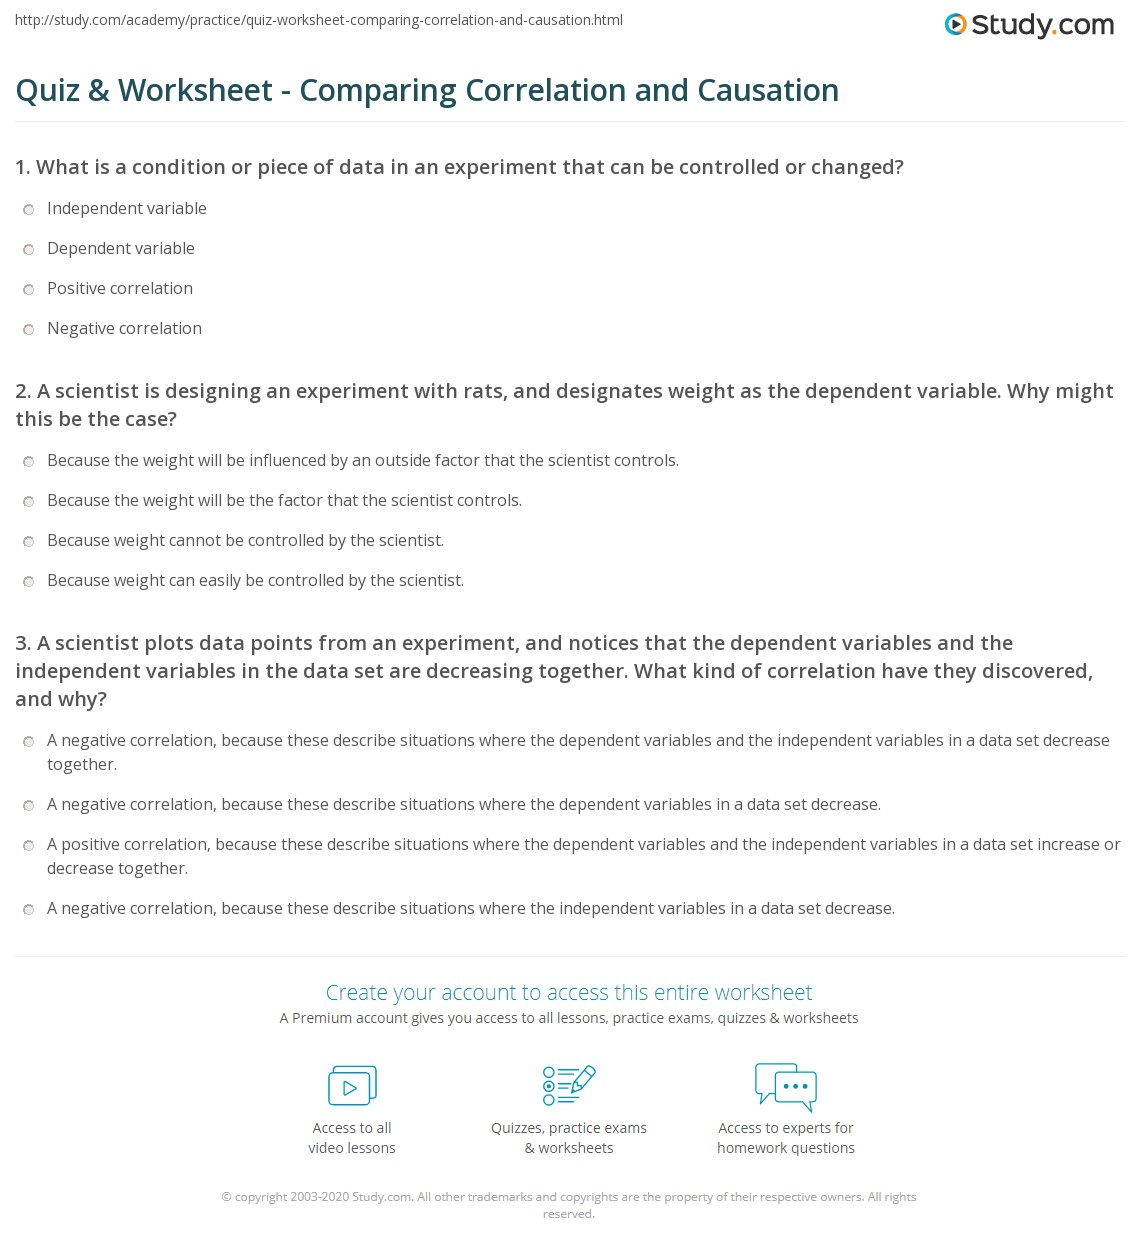 Aldiablosus  Marvellous Quiz Amp Worksheet  Comparing Correlation And Causation  Studycom With Hot Print Correlation Vs Causation Differences Amp Definition Worksheet With Appealing Worksheet Mole Problems Answers Also Types Of Triangles Worksheets In Addition Free Printable Music Worksheets And Good Vs Well Worksheet As Well As Shapes Worksheet Kindergarten Additionally First Grade Measurement Worksheets From Studycom With Aldiablosus  Hot Quiz Amp Worksheet  Comparing Correlation And Causation  Studycom With Appealing Print Correlation Vs Causation Differences Amp Definition Worksheet And Marvellous Worksheet Mole Problems Answers Also Types Of Triangles Worksheets In Addition Free Printable Music Worksheets From Studycom